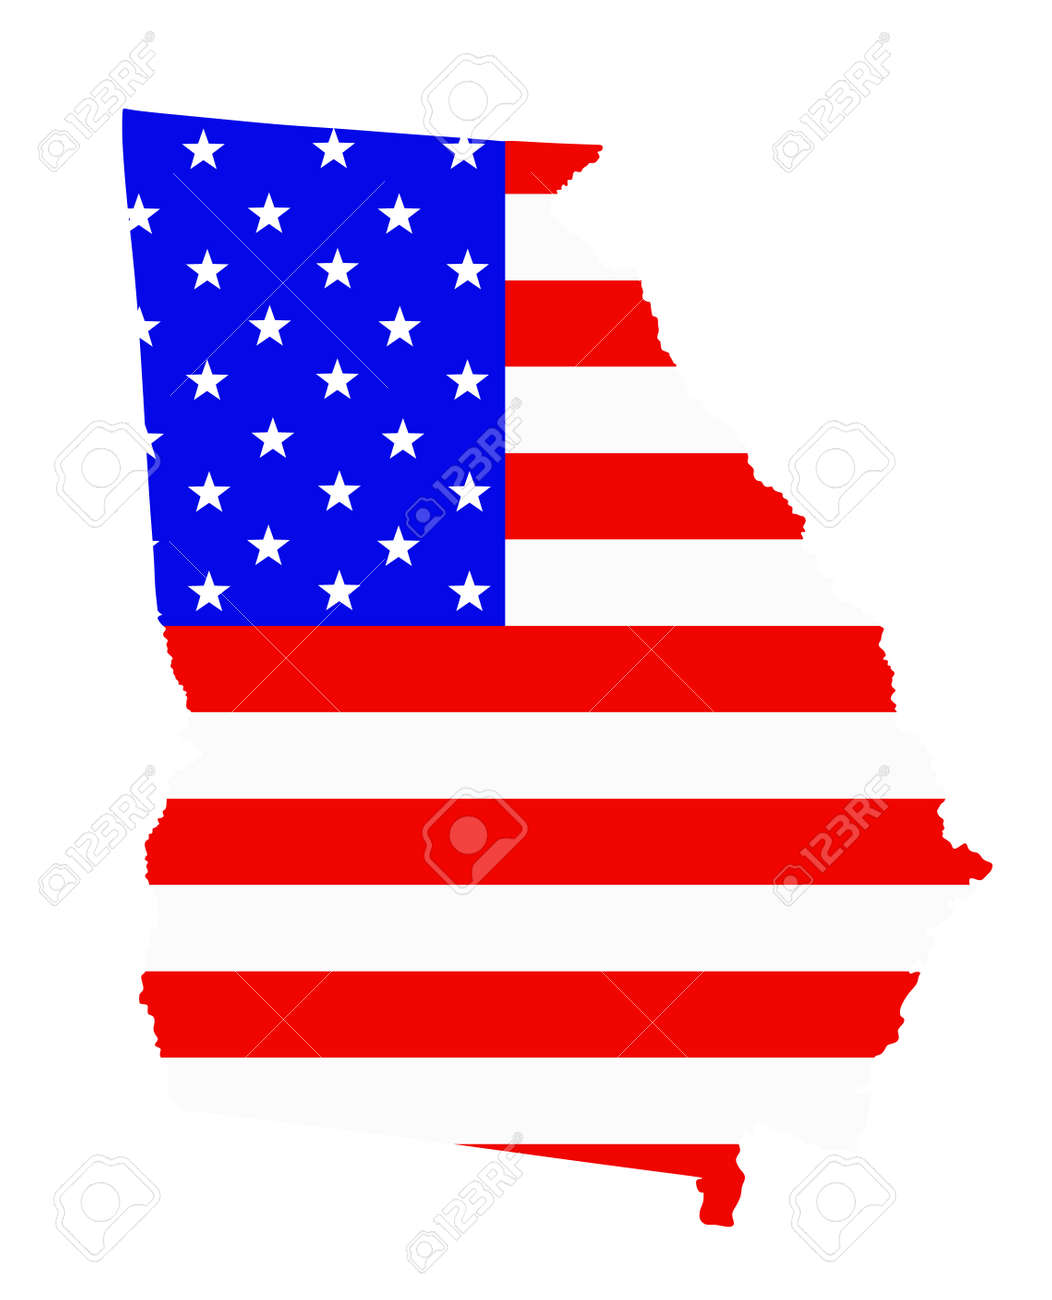 Georgia state map vector silhouette illustration. United States of America flag over Georgia map. USA, American national symbol of pride and patriotism. Vote election campaign banner. - 172749400